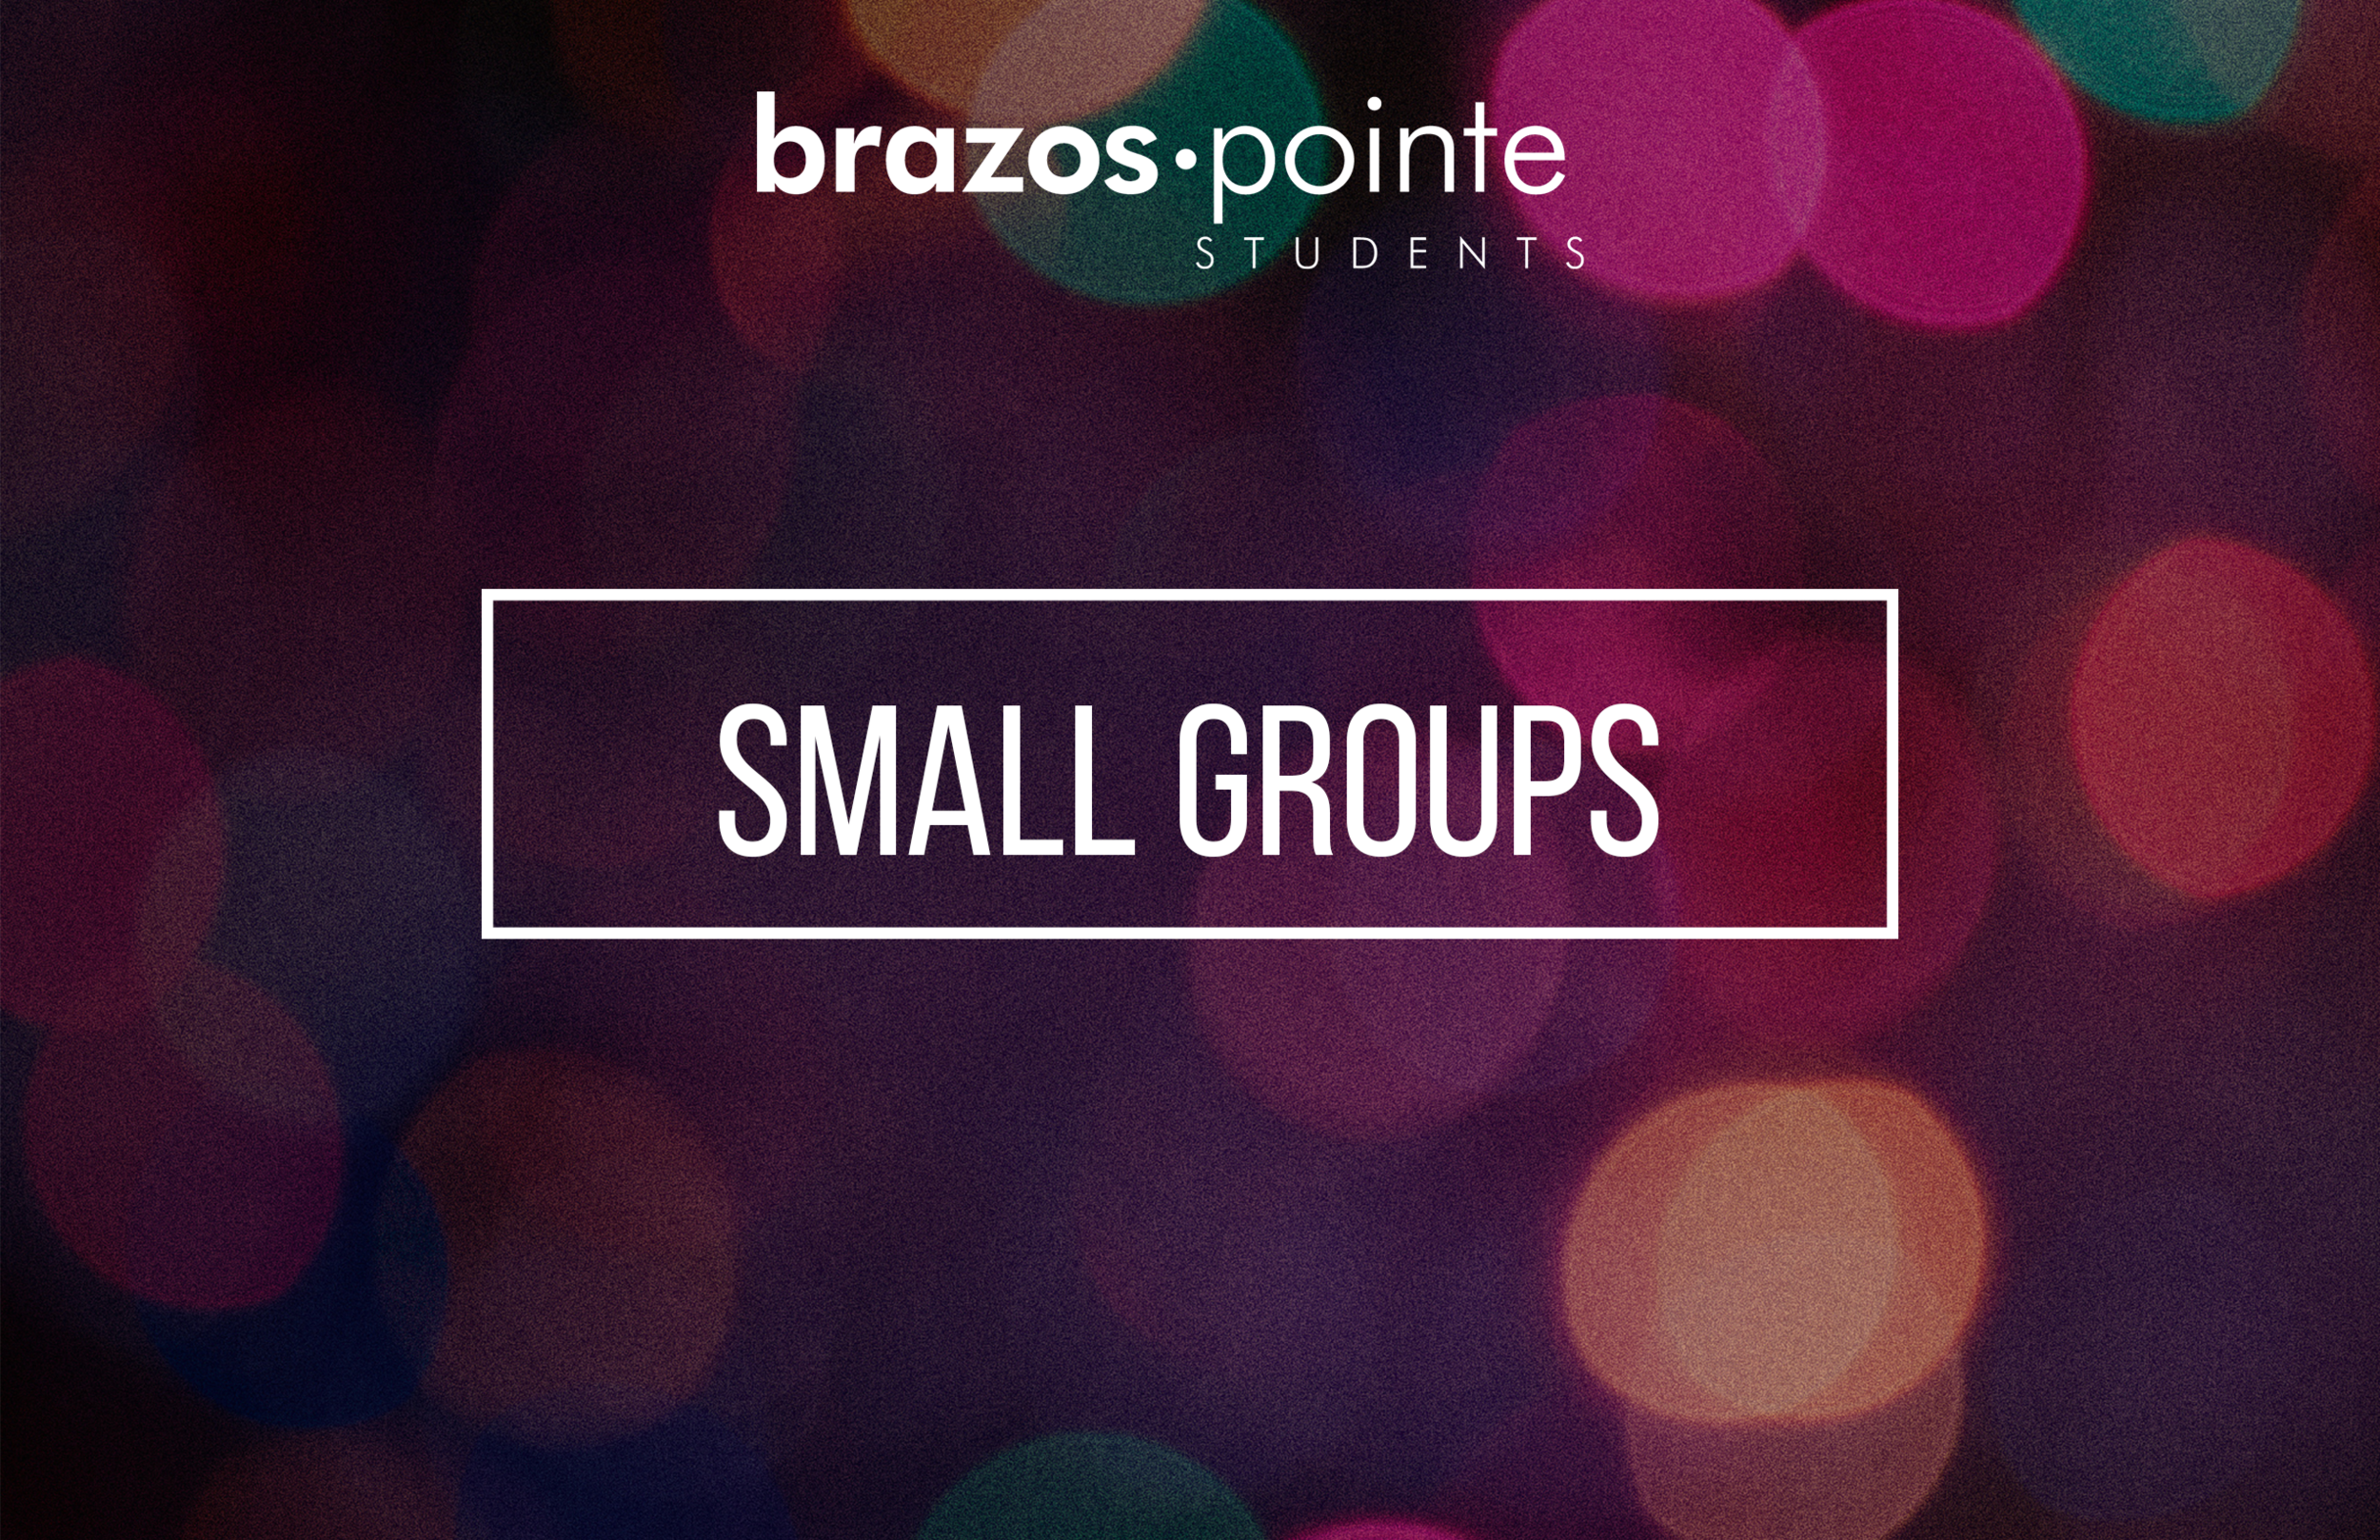 Student Small groups.png